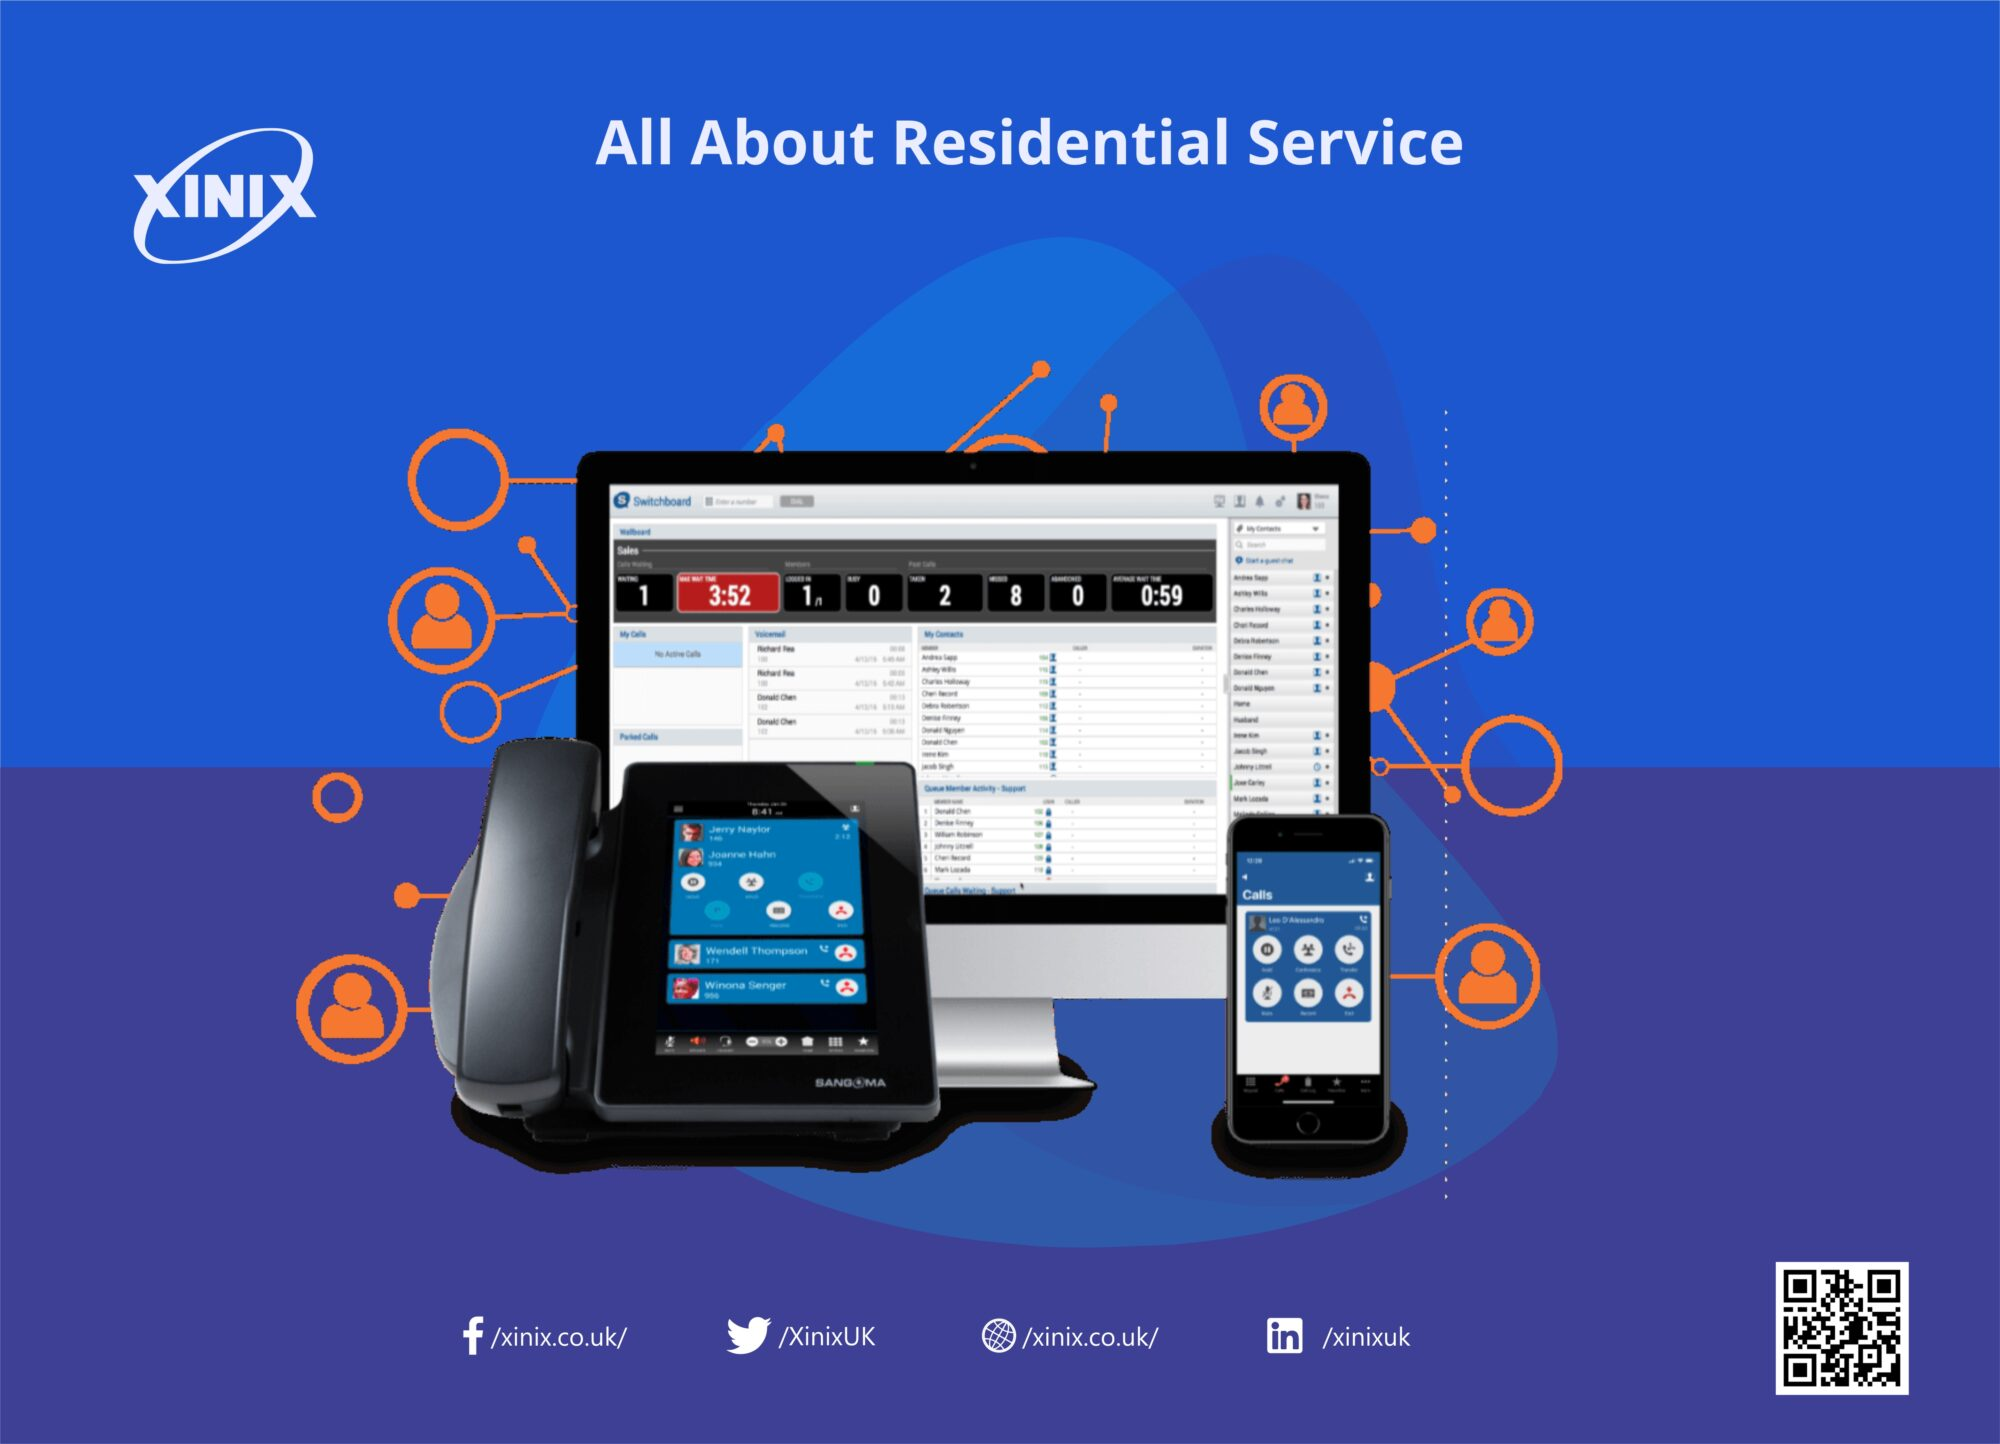 All About Residential Service